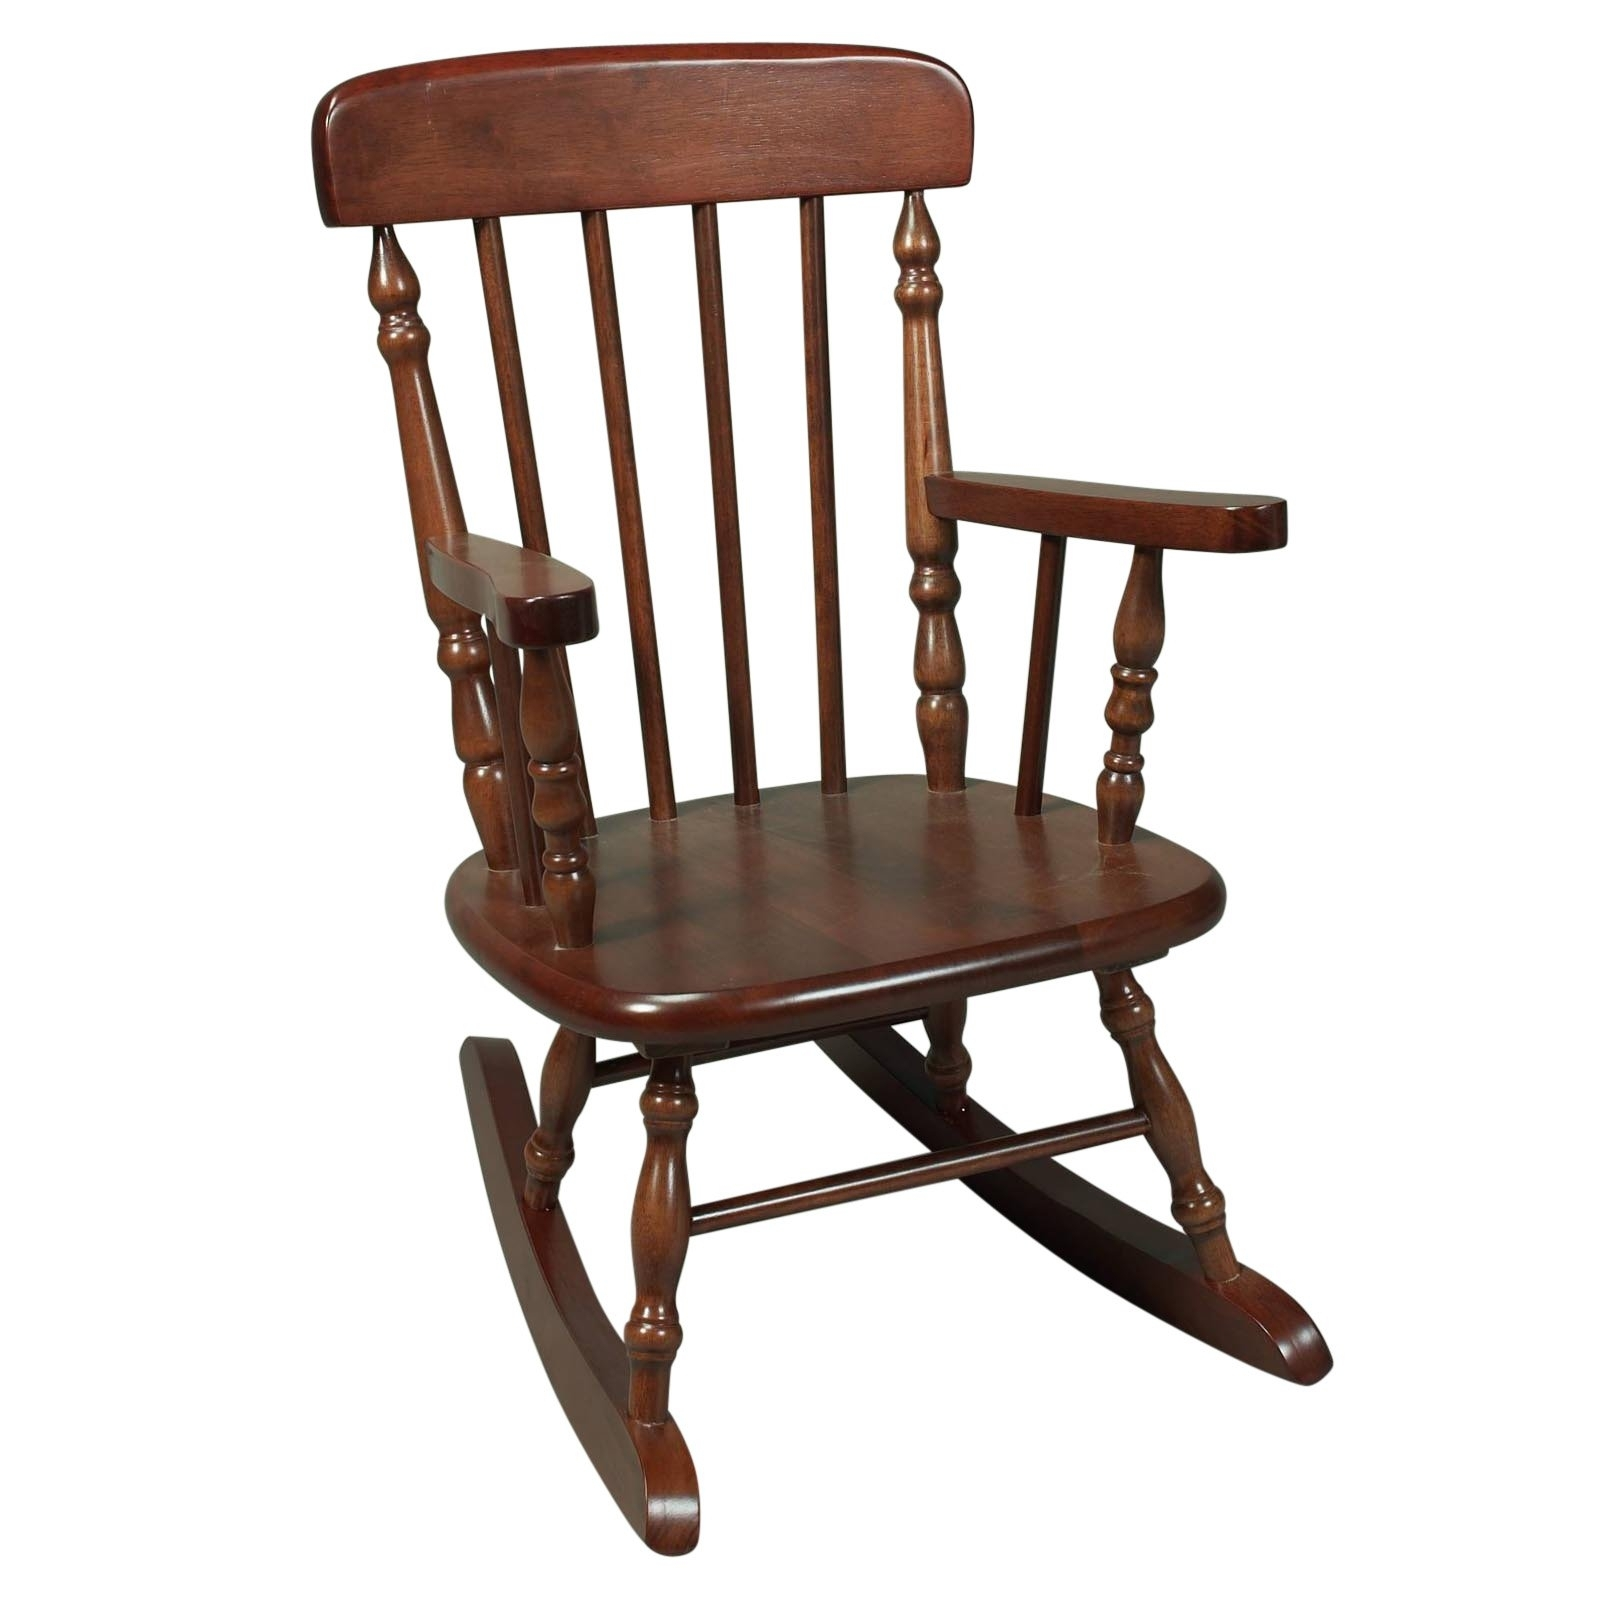 Cheap Wooden Rocking Chair Contemporary Kids Spindle Hayneedle Inside Char Log Patio Rocking Chairs With Star (#2 of 15)